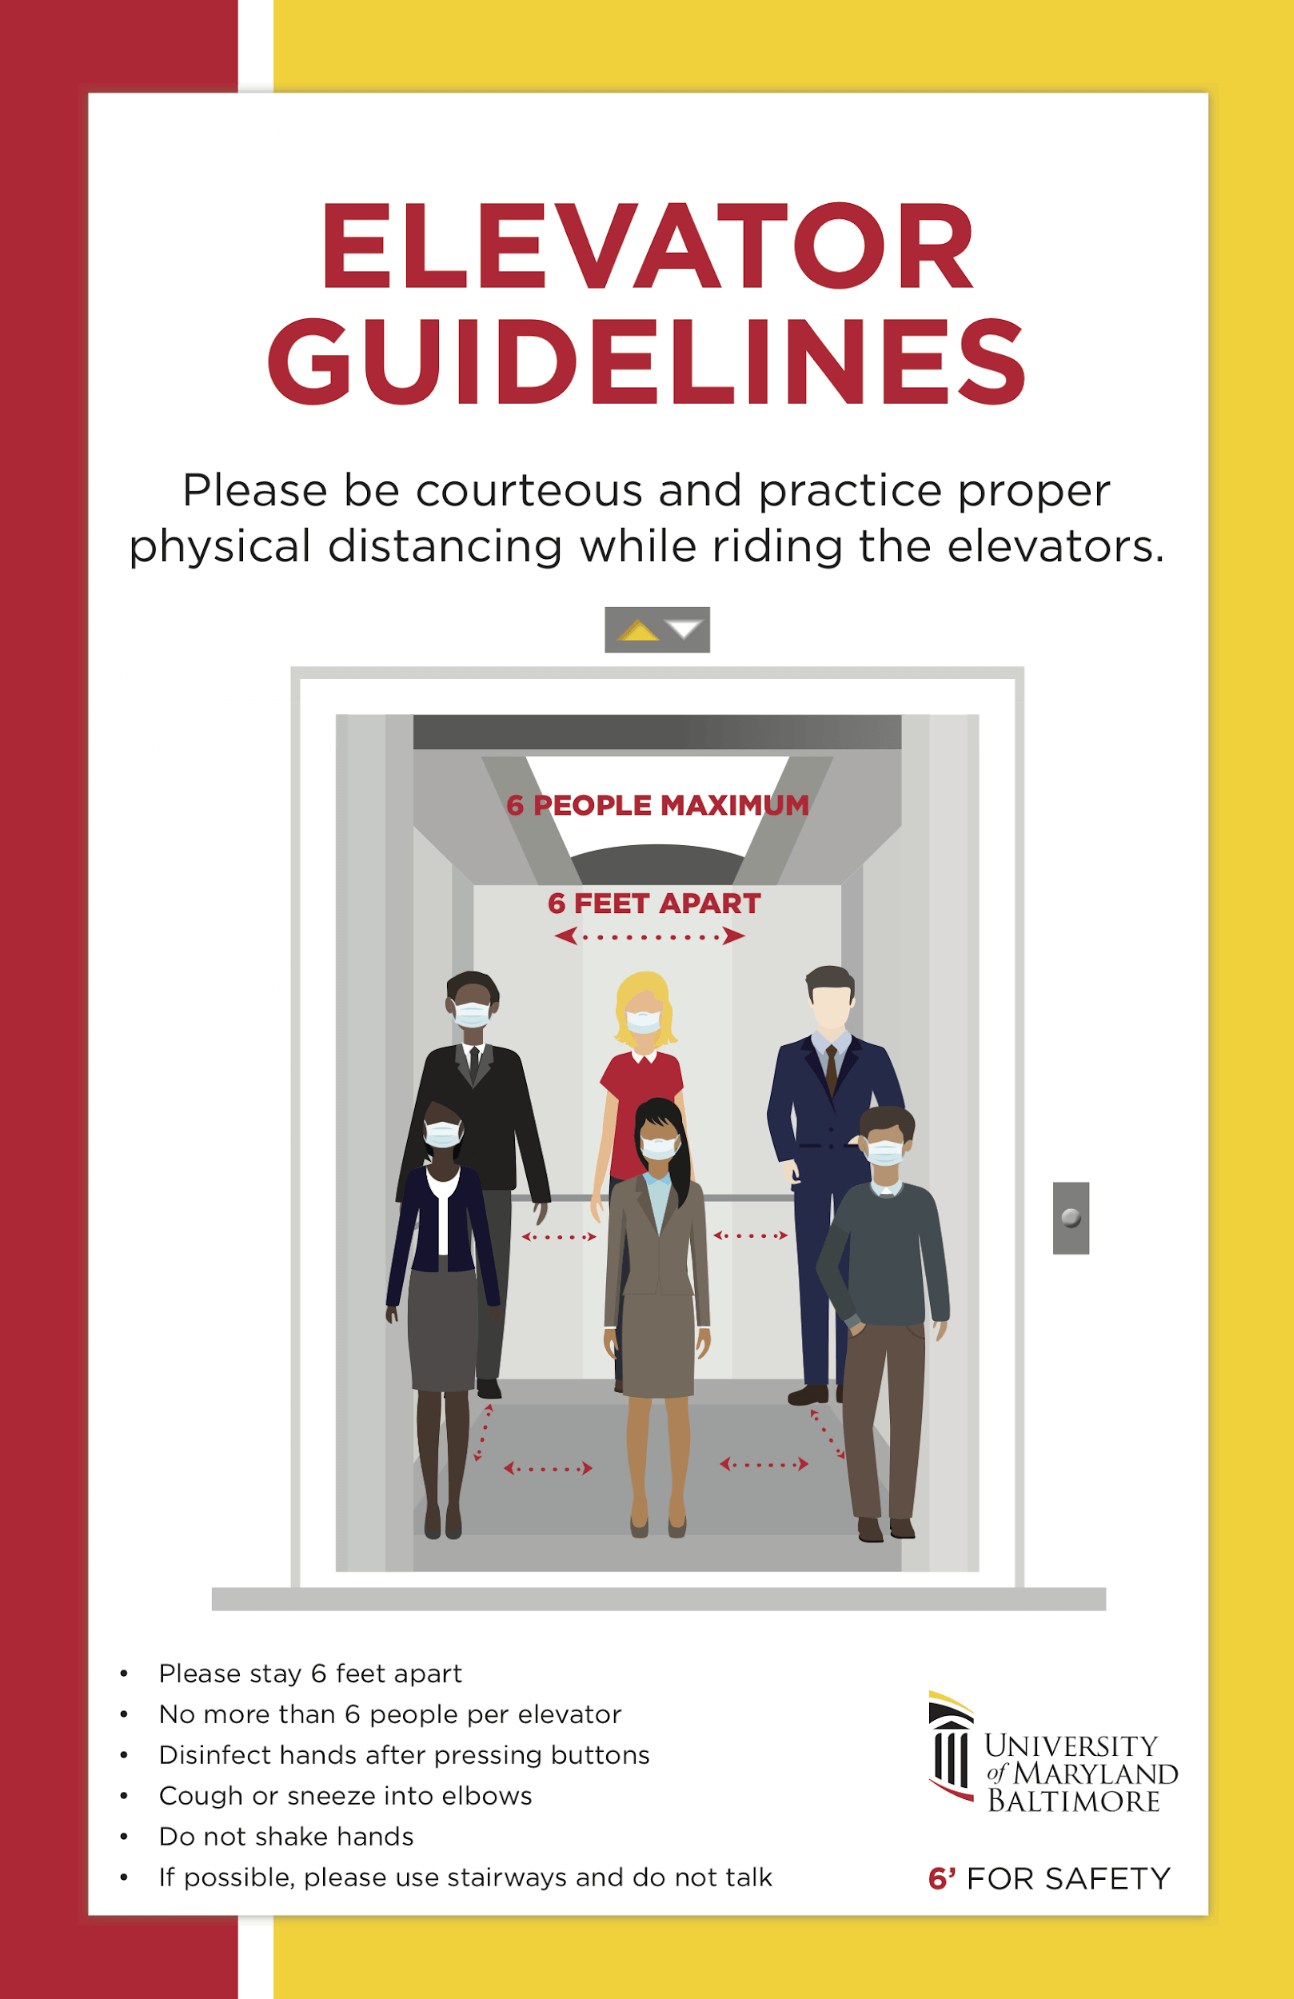 elevator guidelines for COVID-19